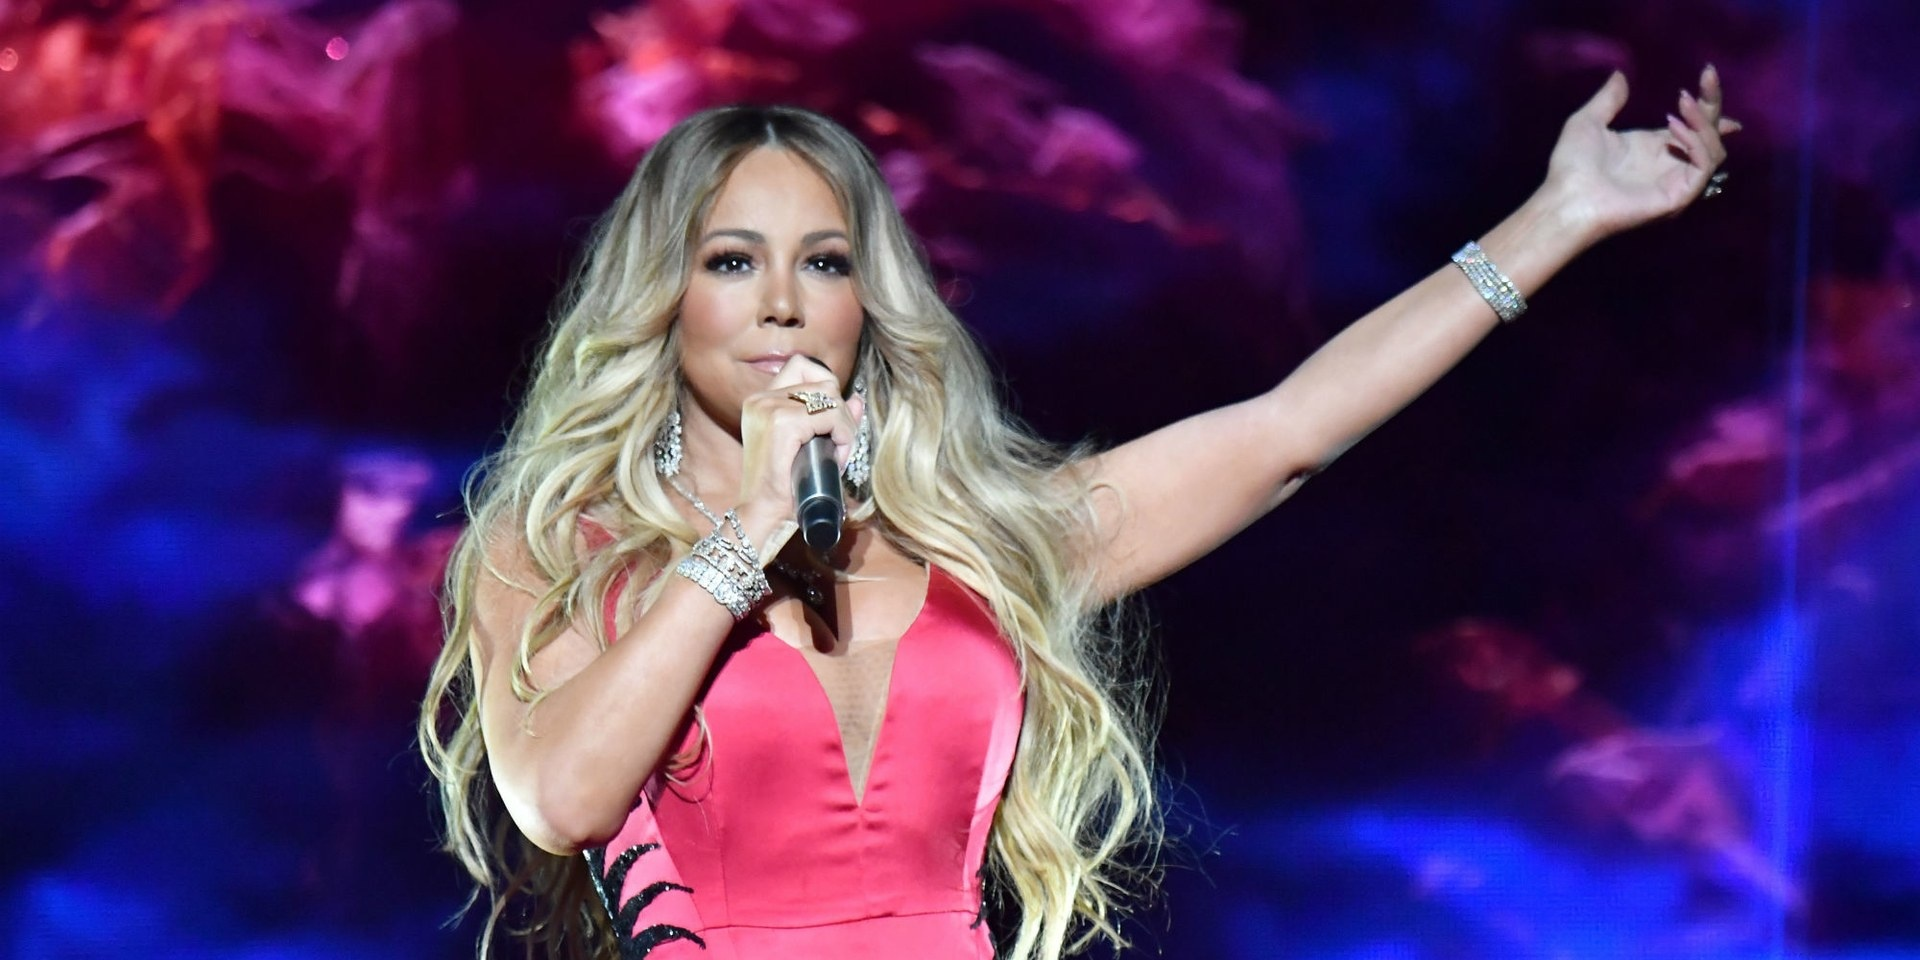 Mariah Carey shatters single-day Spotify record on Christmas Eve